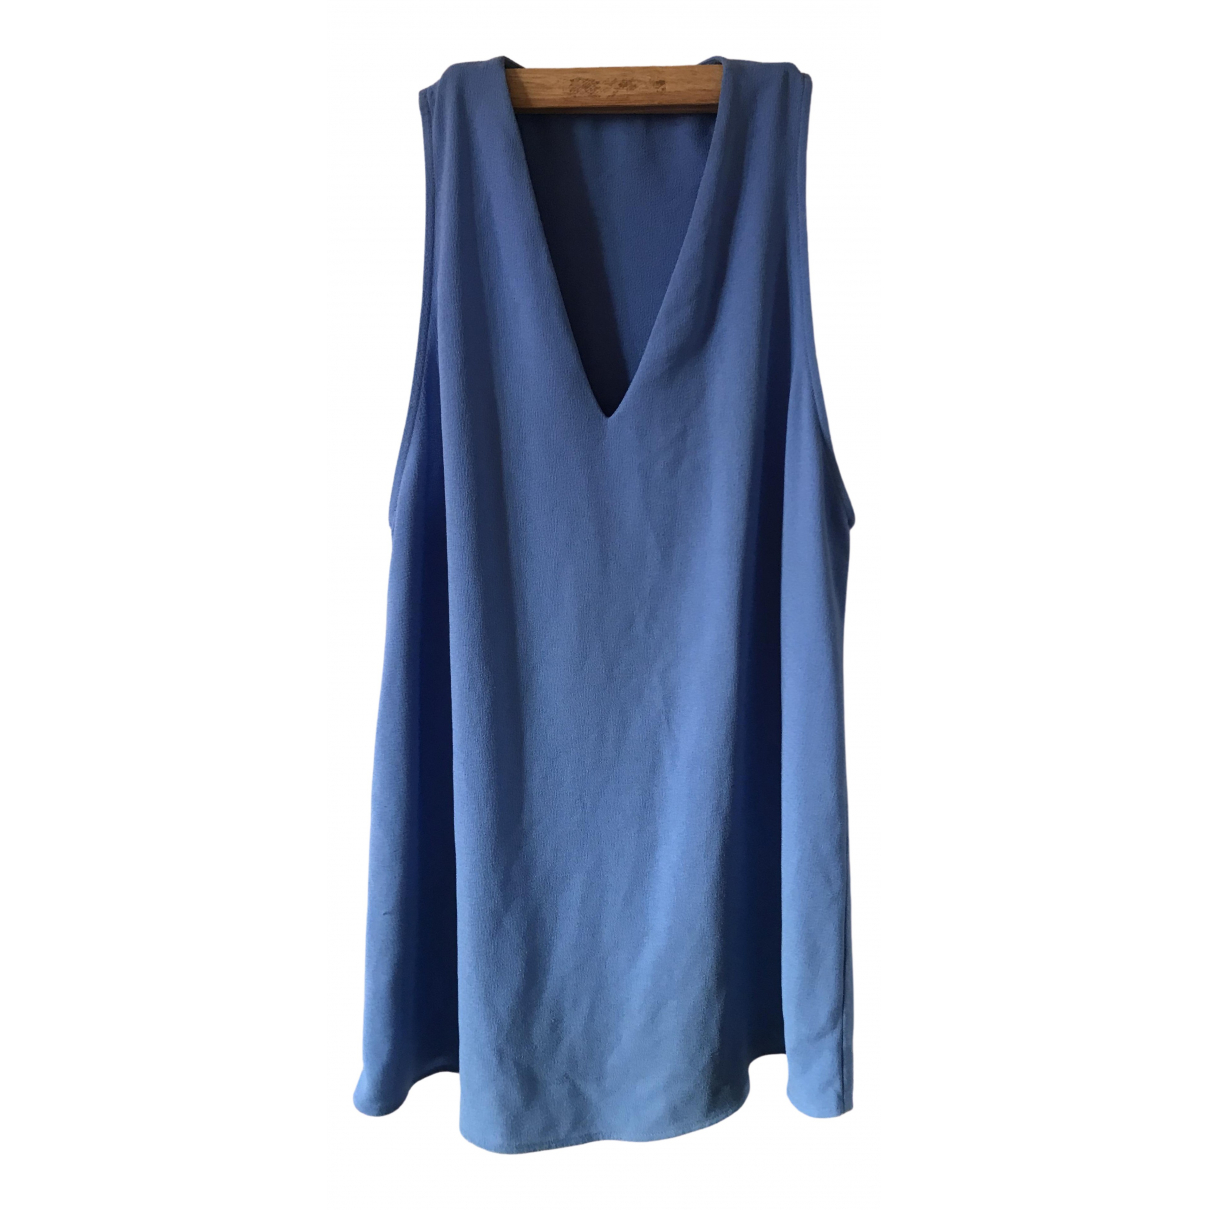 American Apparel \N Kleid in  Blau Polyester